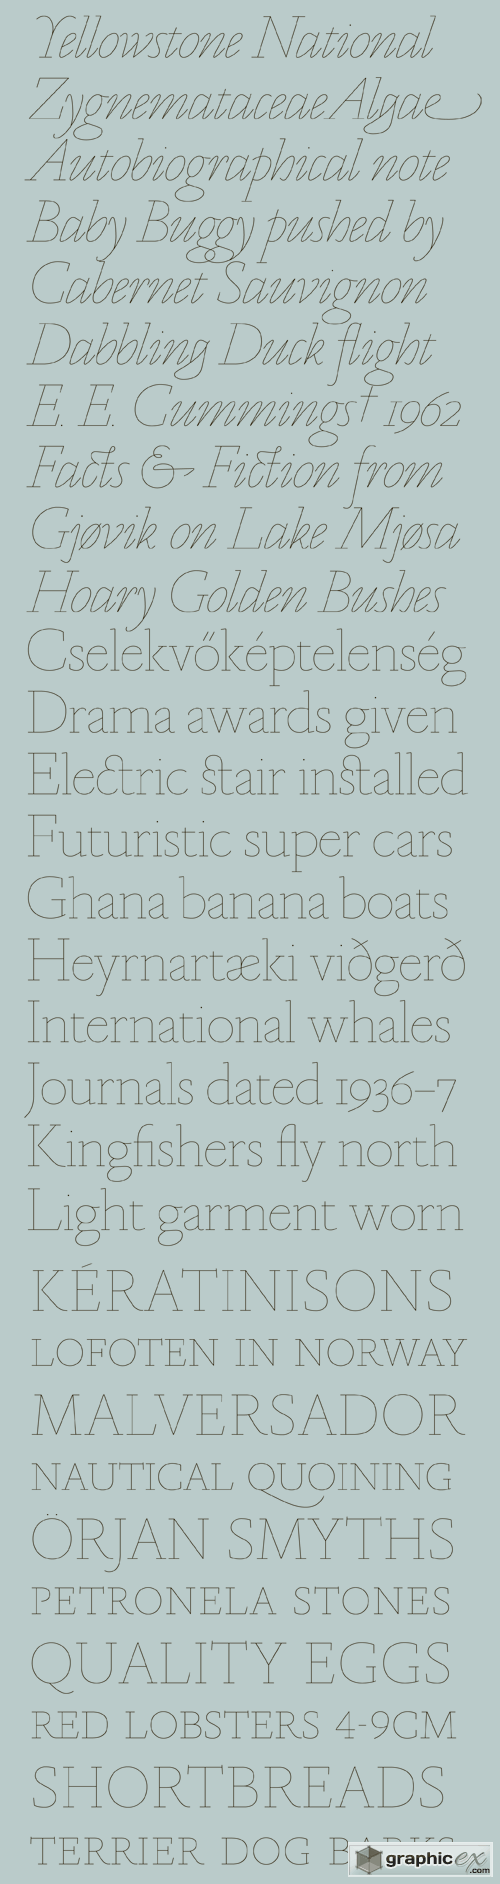 Marian Font Family - 18 Fonts for $600